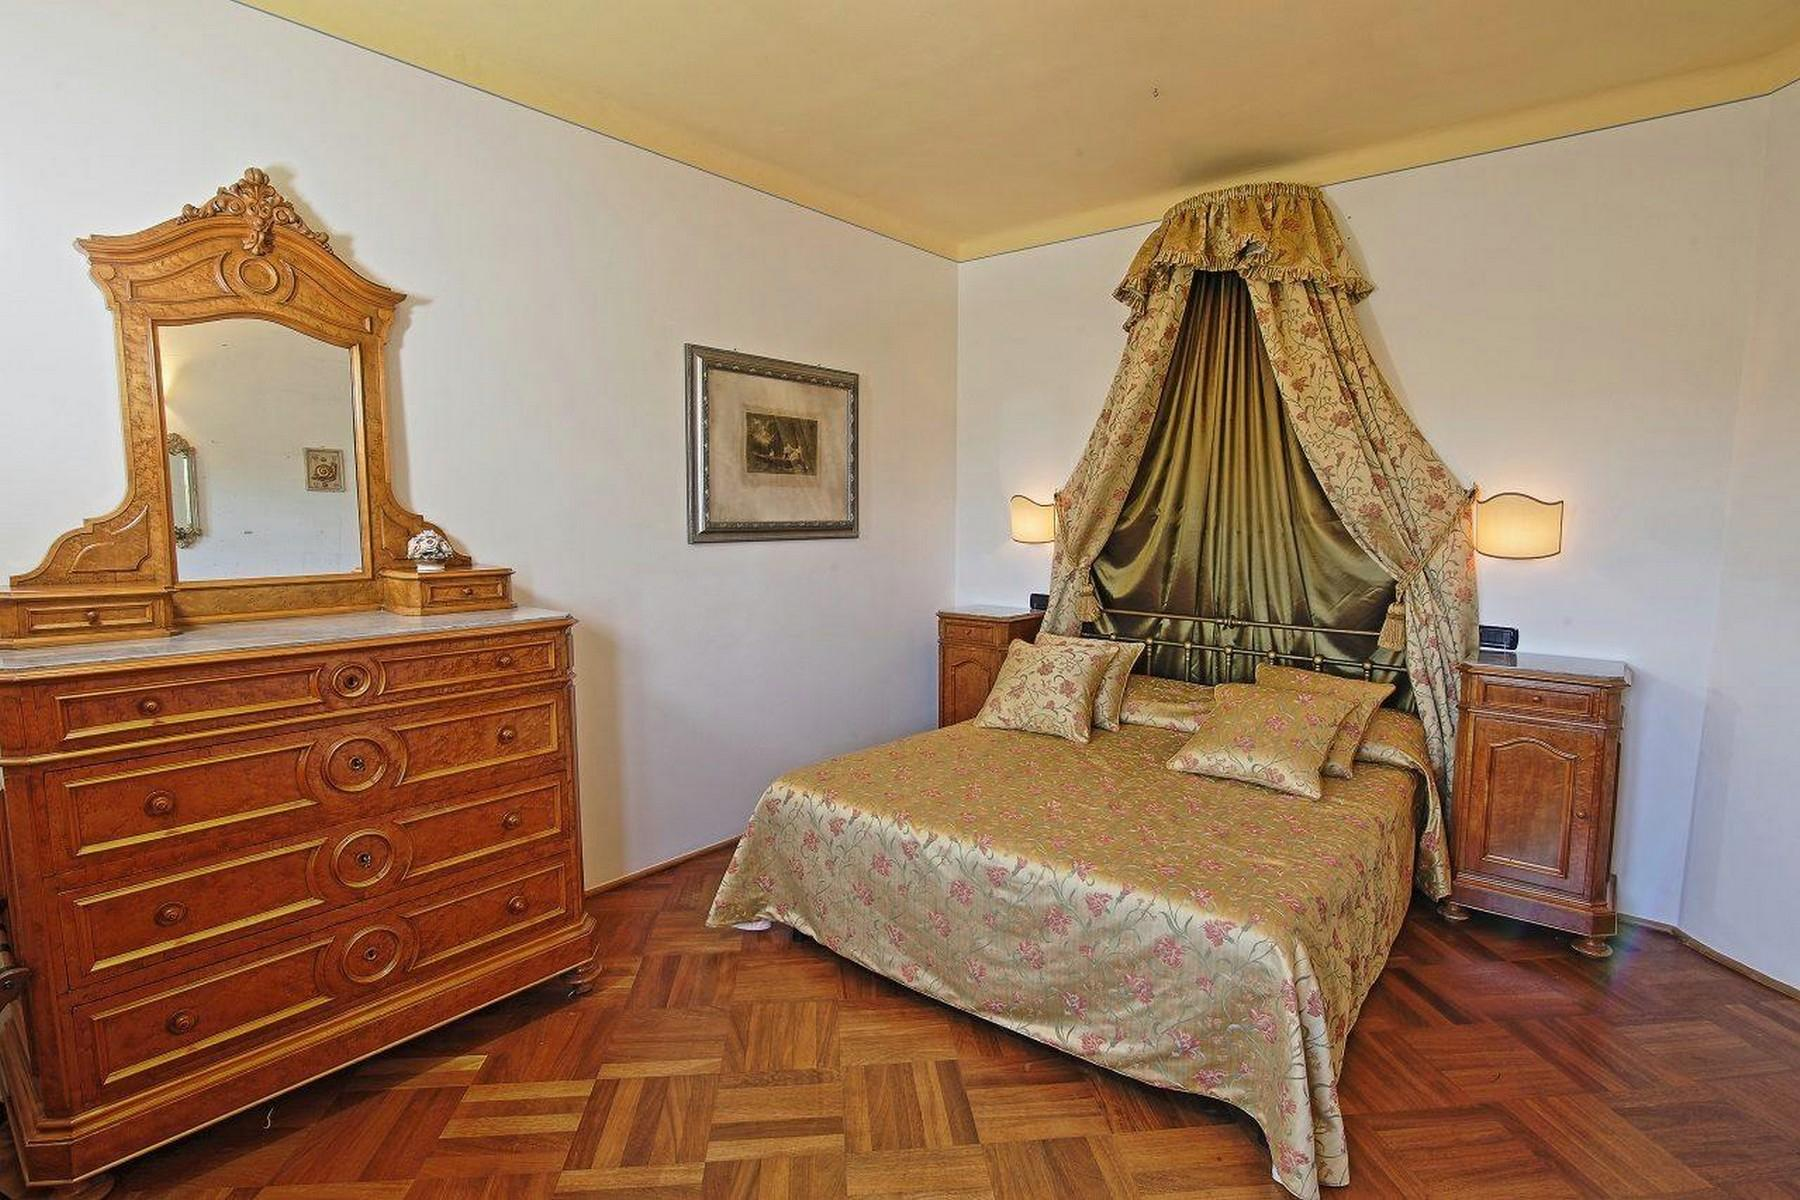 Beautiful Boutique Hotel with Restaurant and SPA in the hills of Torrita di Siena - 4